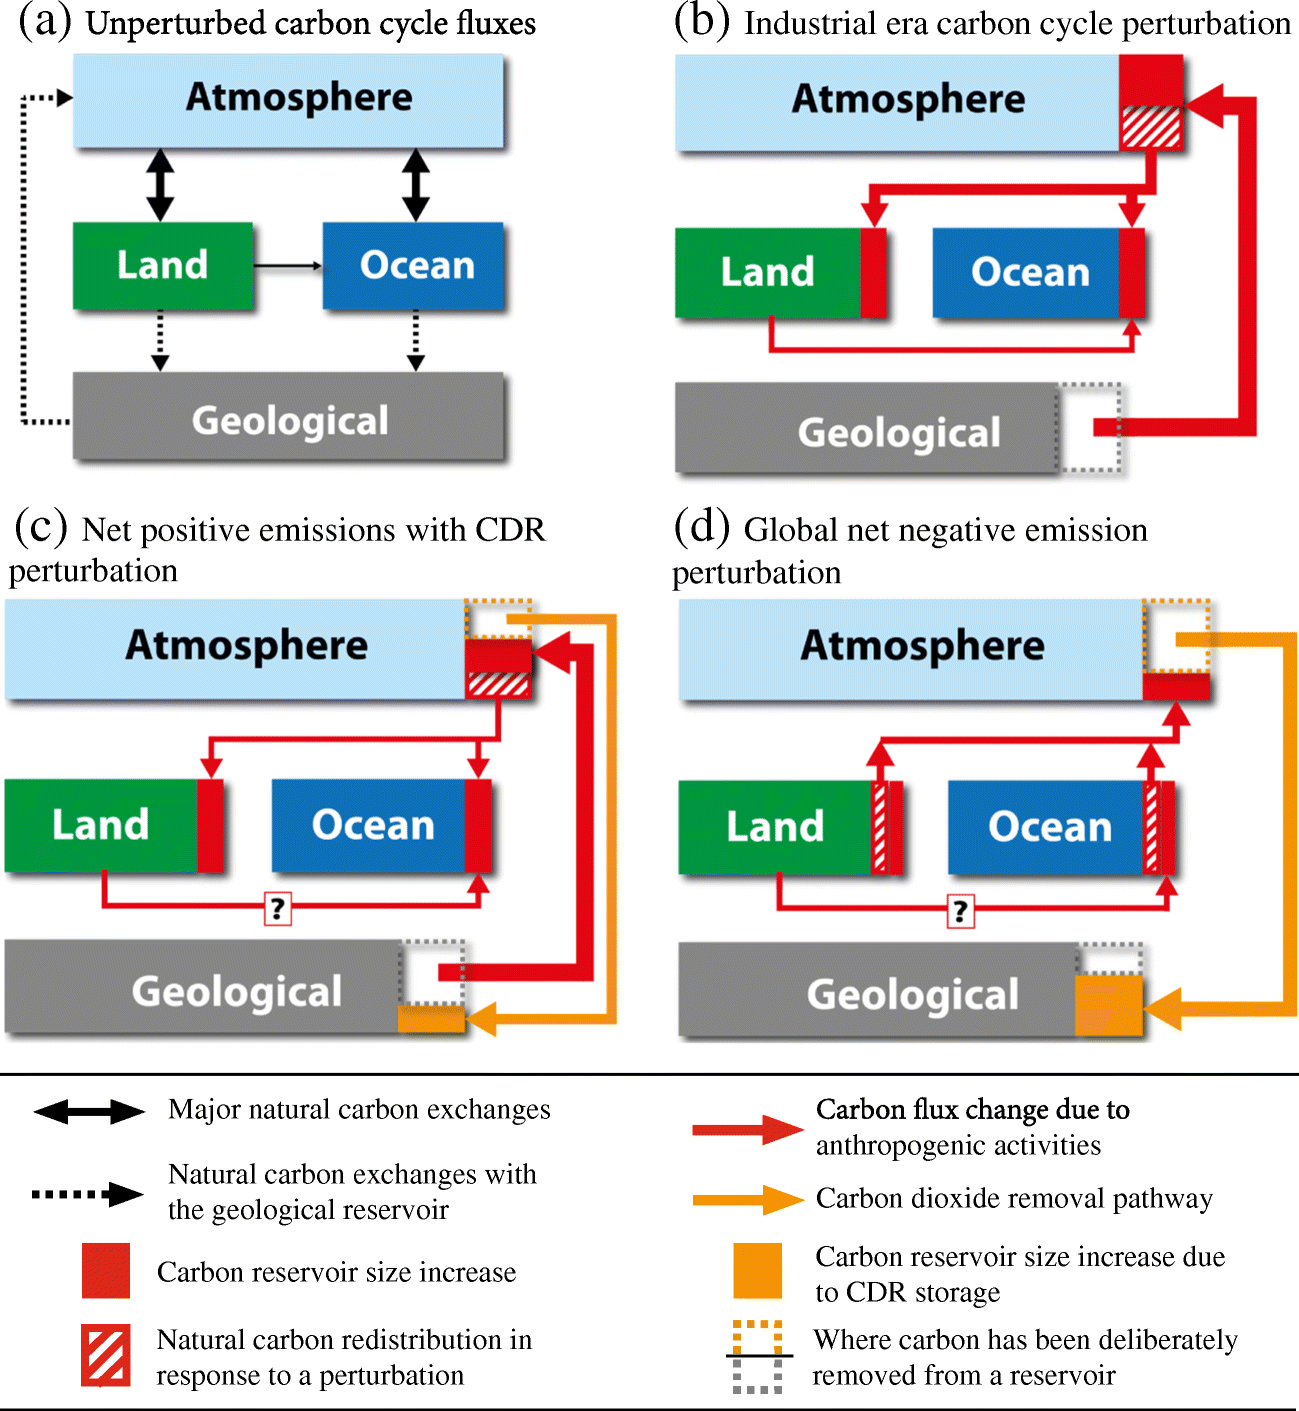 The Effects of Carbon Dioxide Removal on the Carbon Cycle